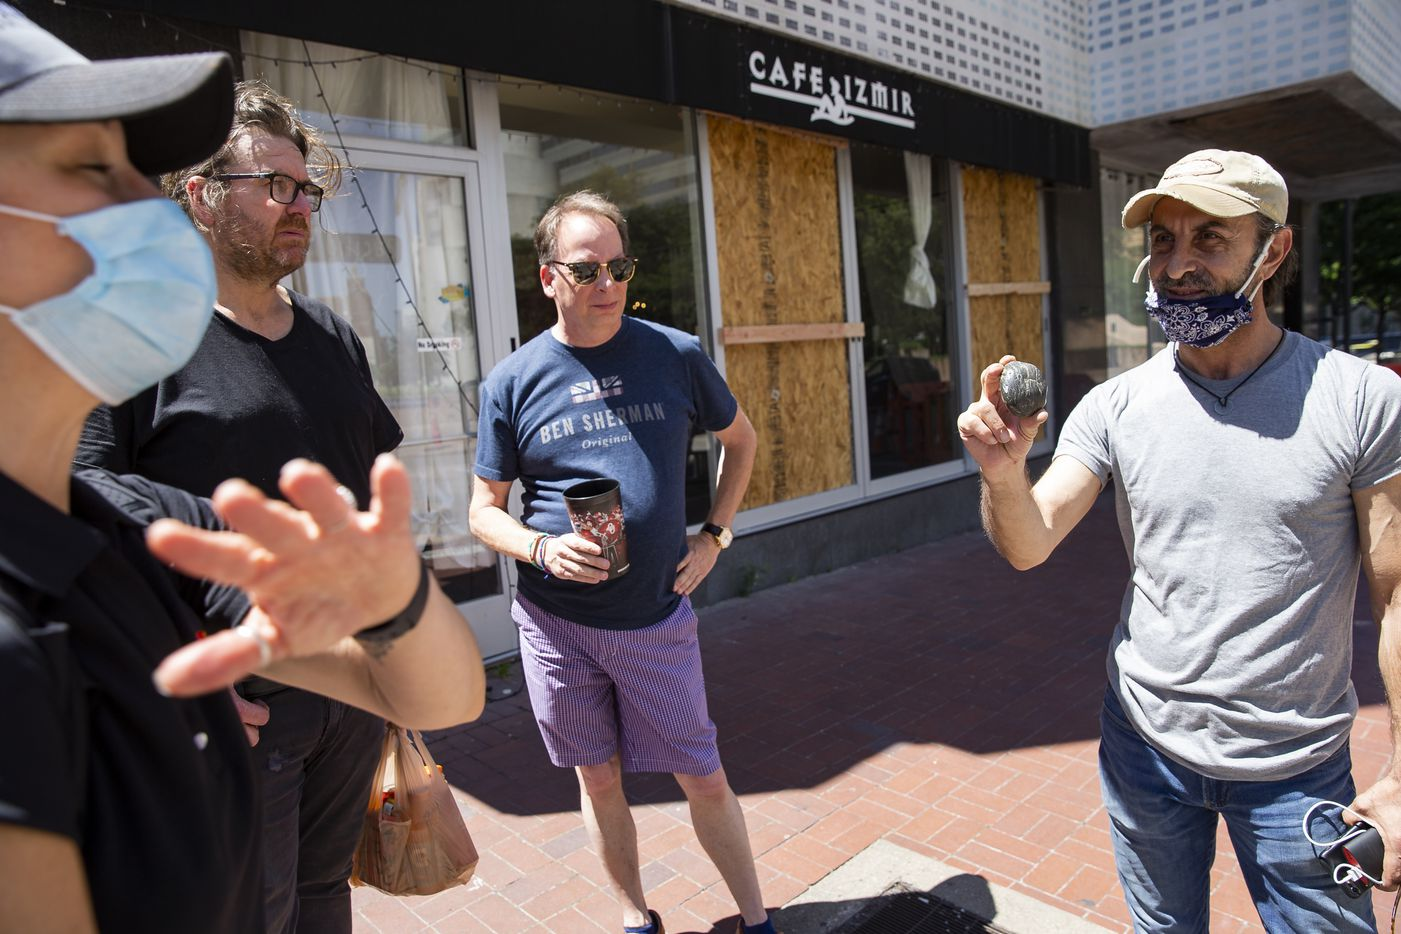 Cafe Izmir owner Beau Nazary shows Kourtney Garrett, President and CEO of Downtown Dallas Inc, a rock that was thrown through his cafe last night on Saturday morning, May 30, 2020, in Dallas. Nazary said he showed up to looters drinking beer last night at 11:30 and stayed until five in the morning watching over his business.